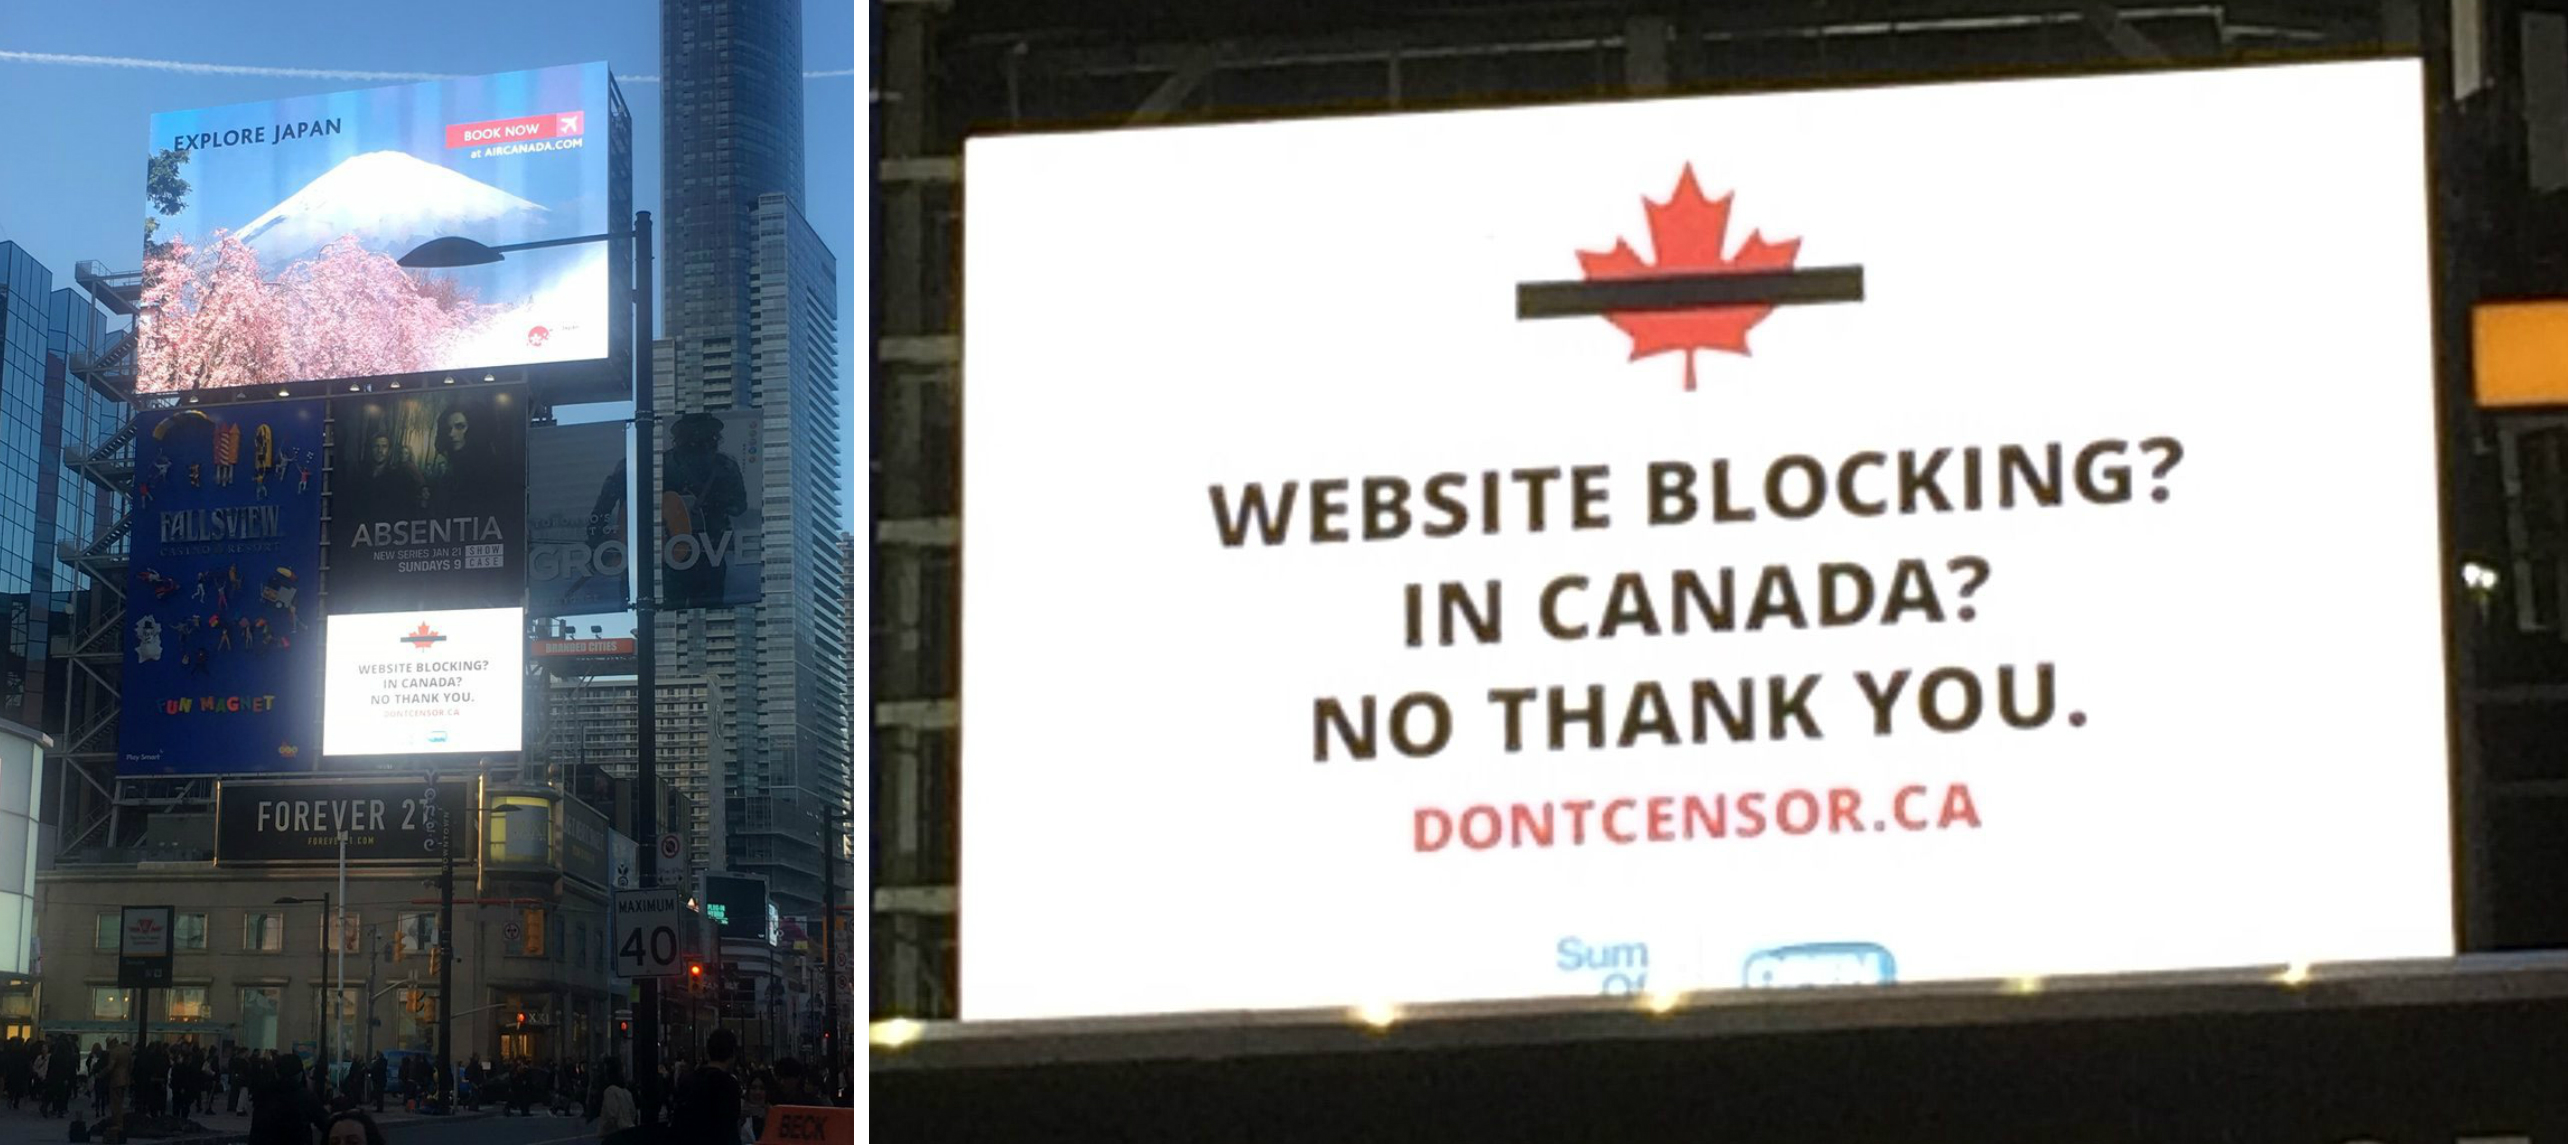 Photographs of giant website-blocking billboard in Yonge and Dundas Square in Toronto